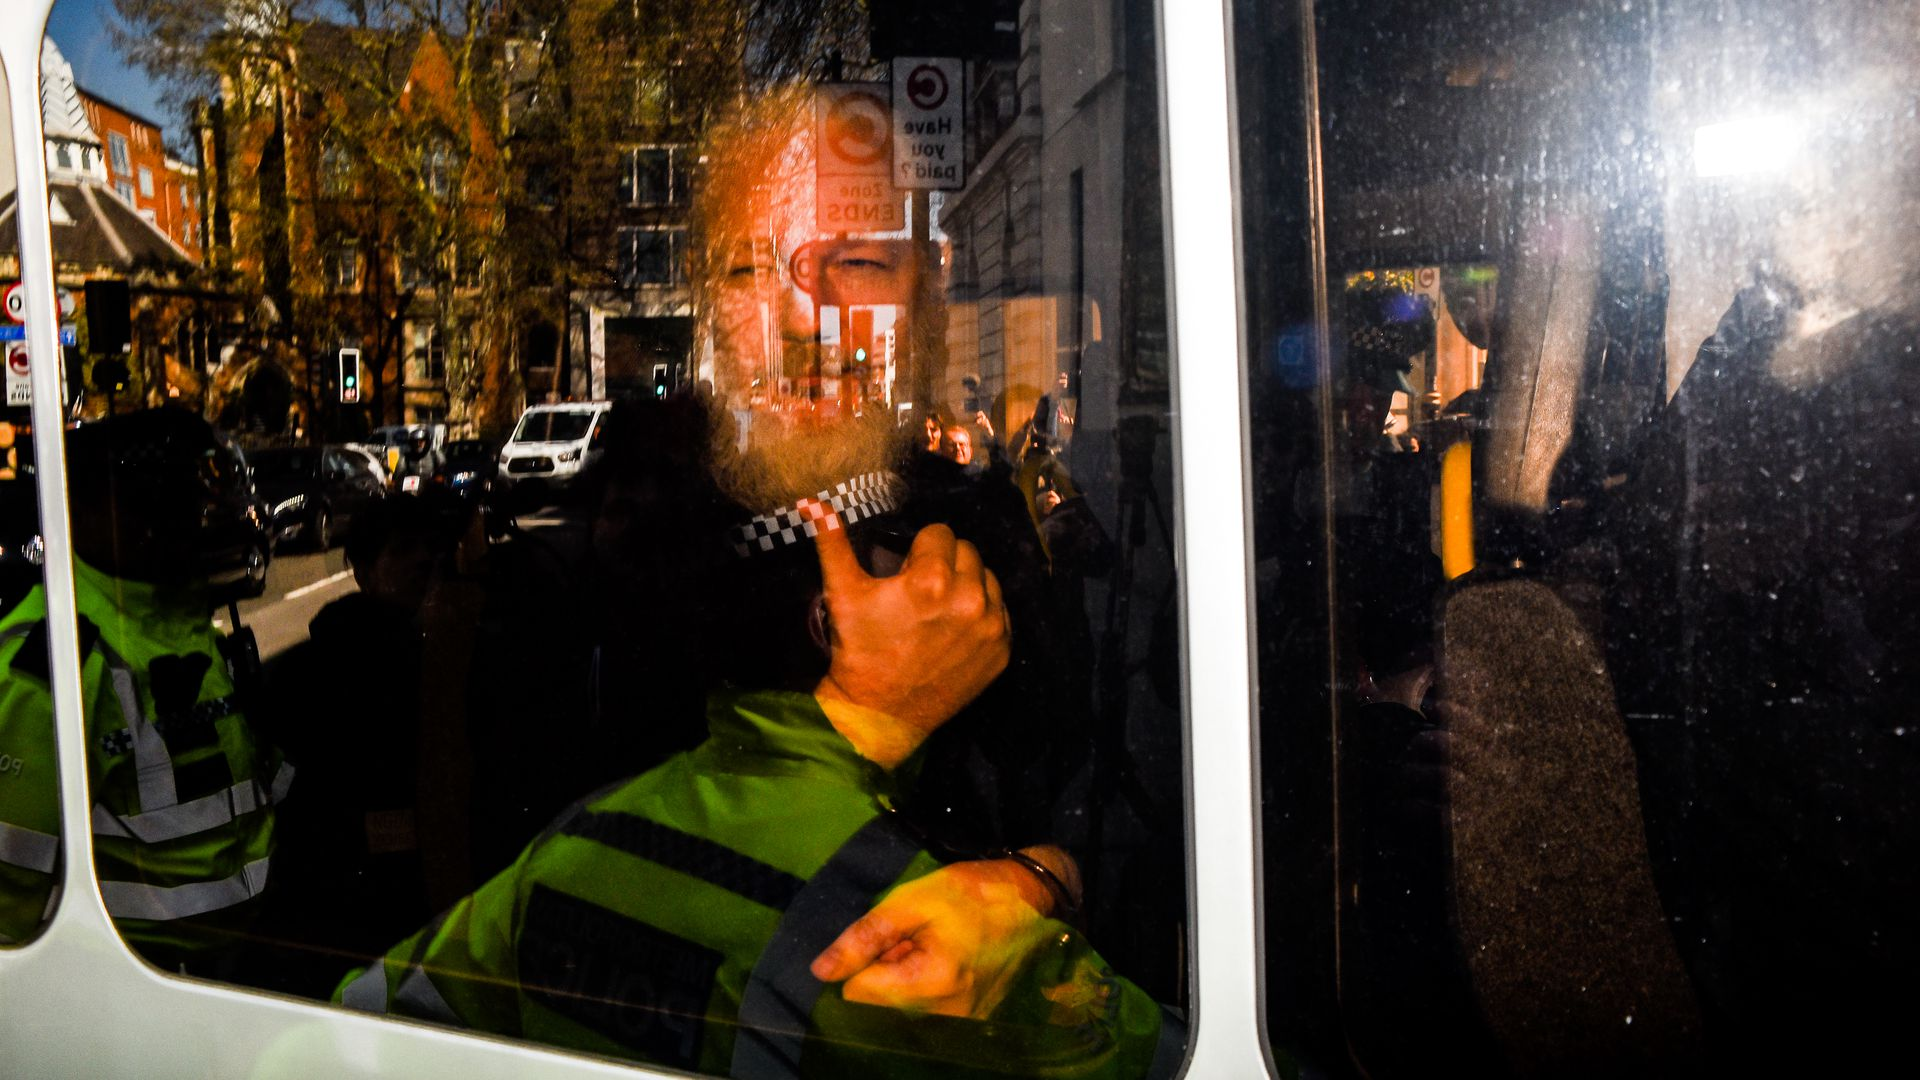 In this image, Assange gives a thumbs up to reporters from inside a vehicle.